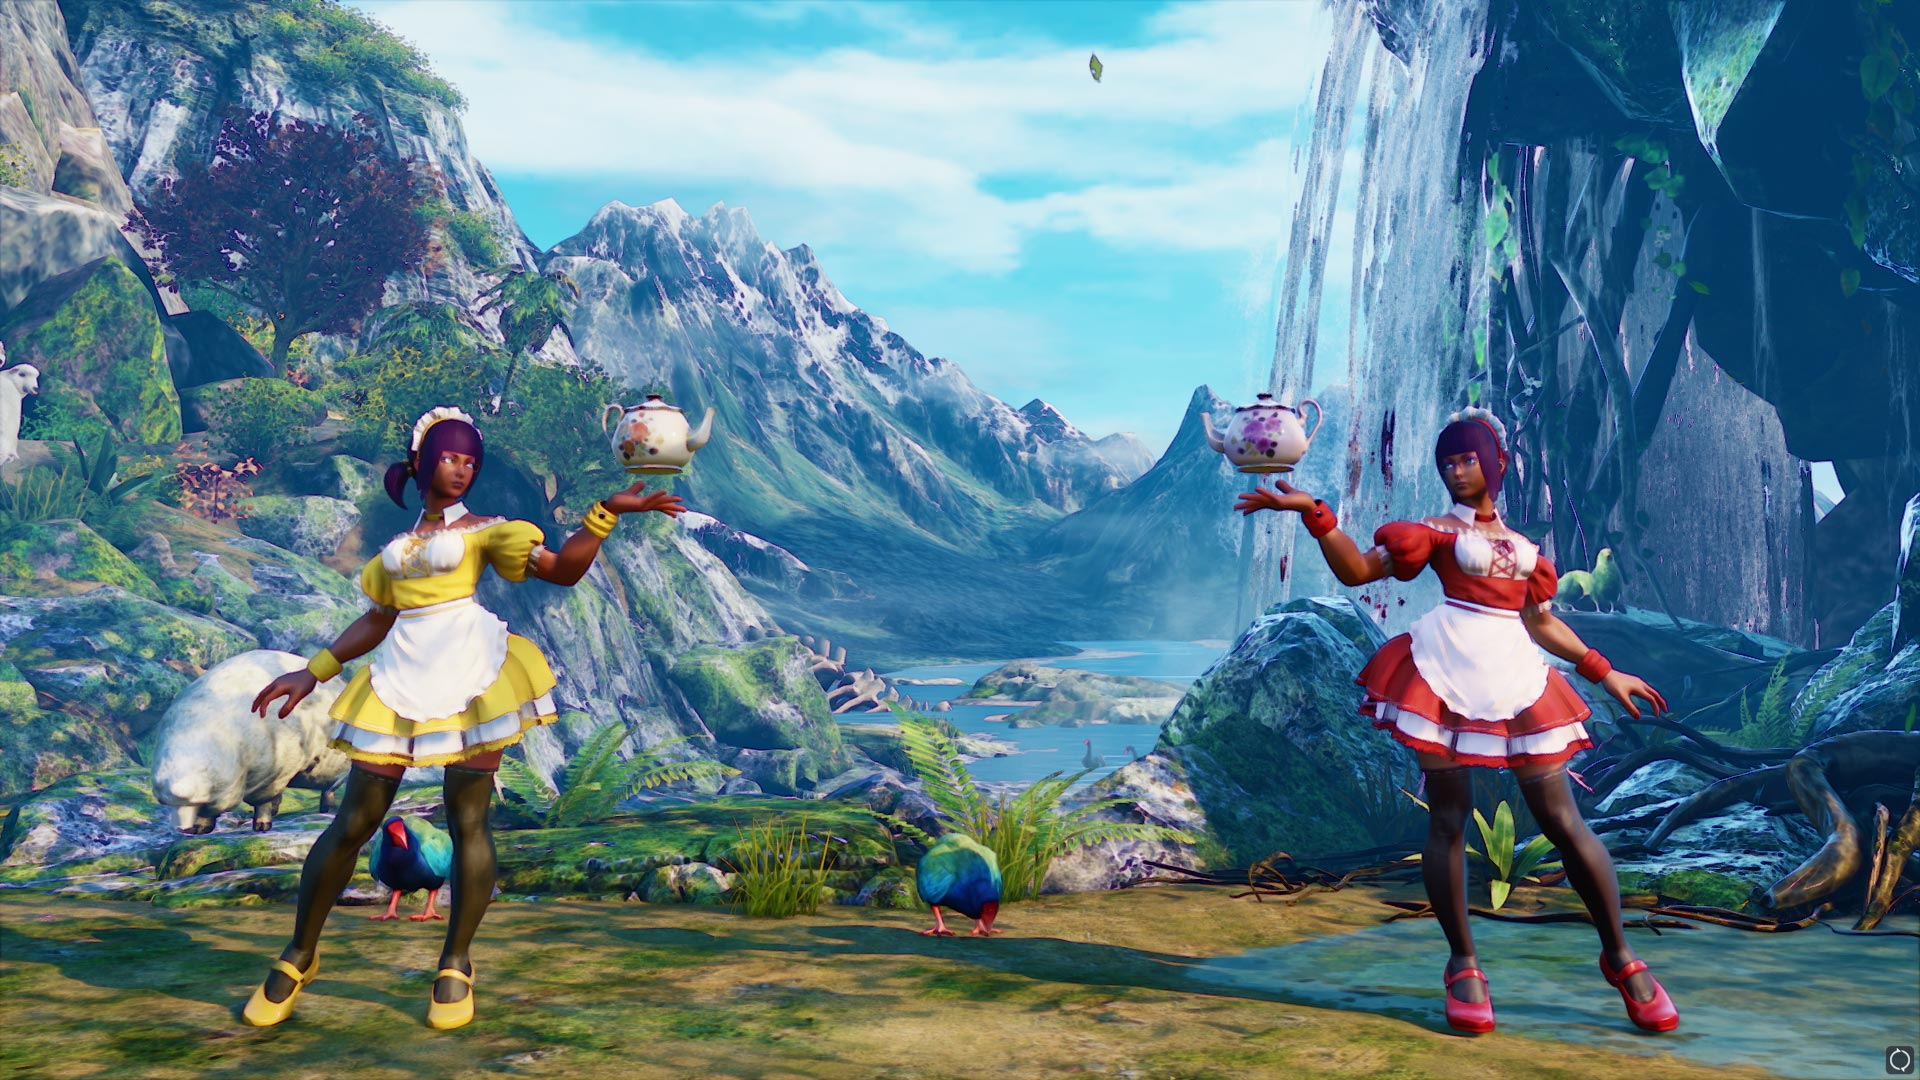 Professional costume colors for Street Fighter 5 13 out of 21 image gallery